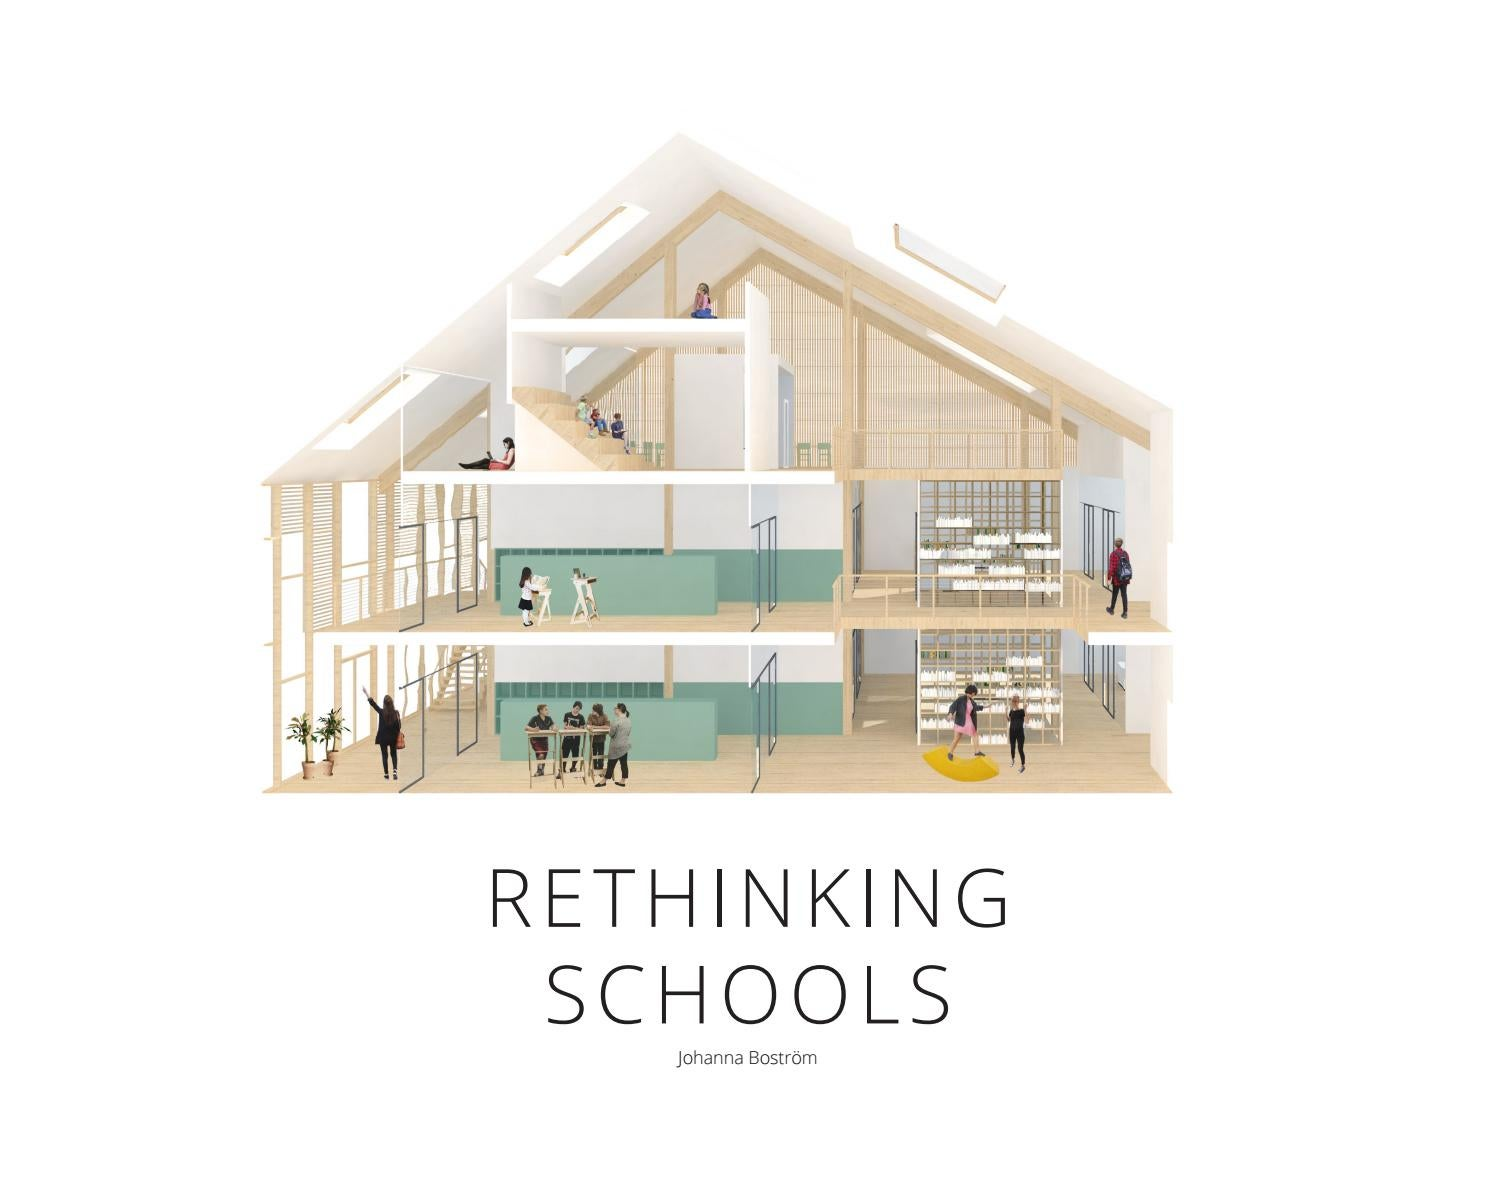 Rethinking Classroom Design ~ Rethinking schools master thesis architecture by johanna